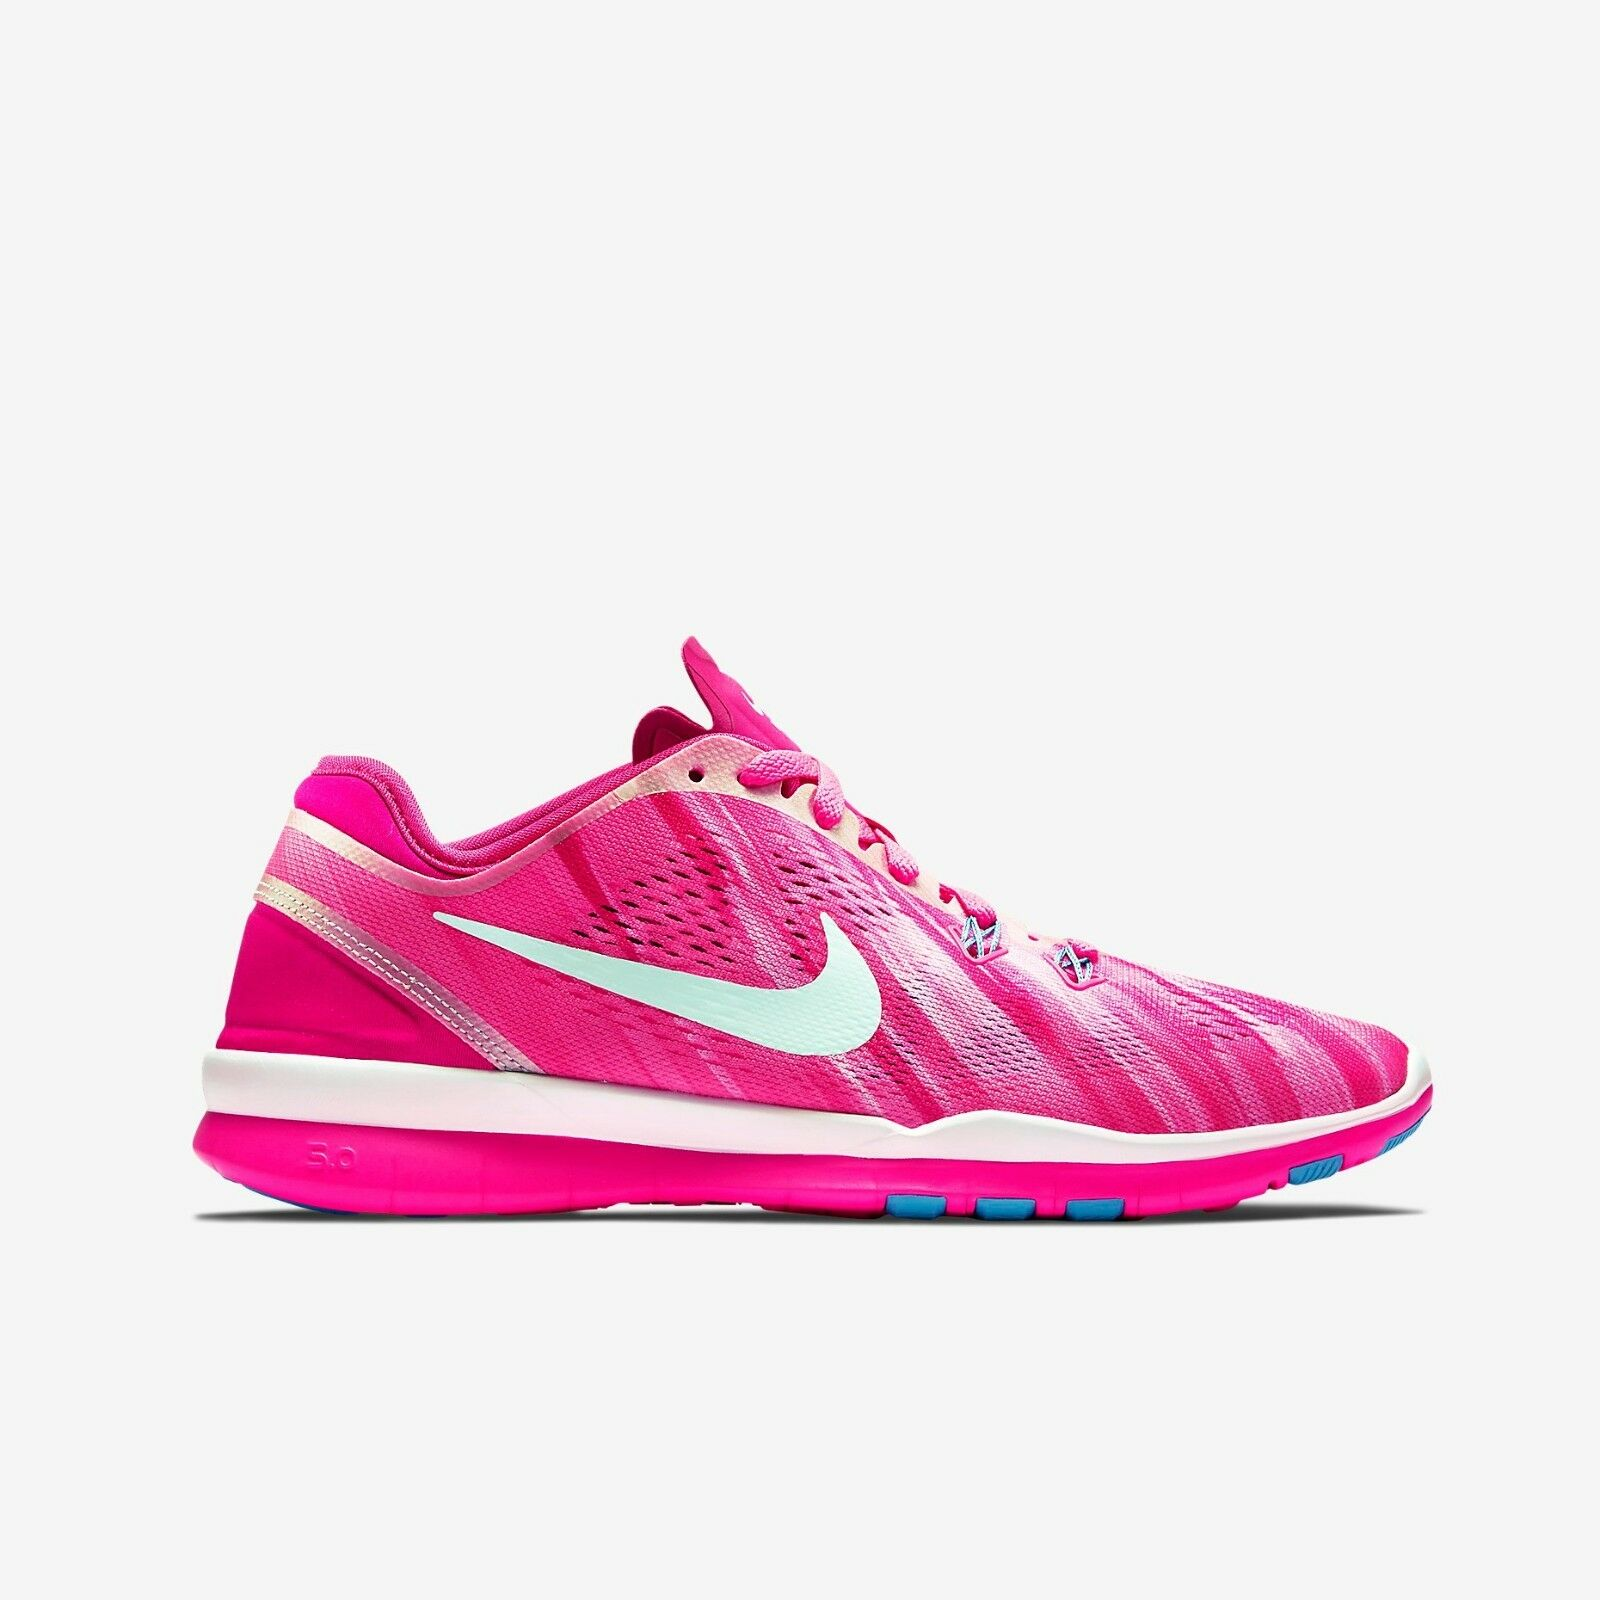 New Nike Women's Free 5.0 TR Fit 5 Print Shoes Authentic (704695-601) Pink Pow